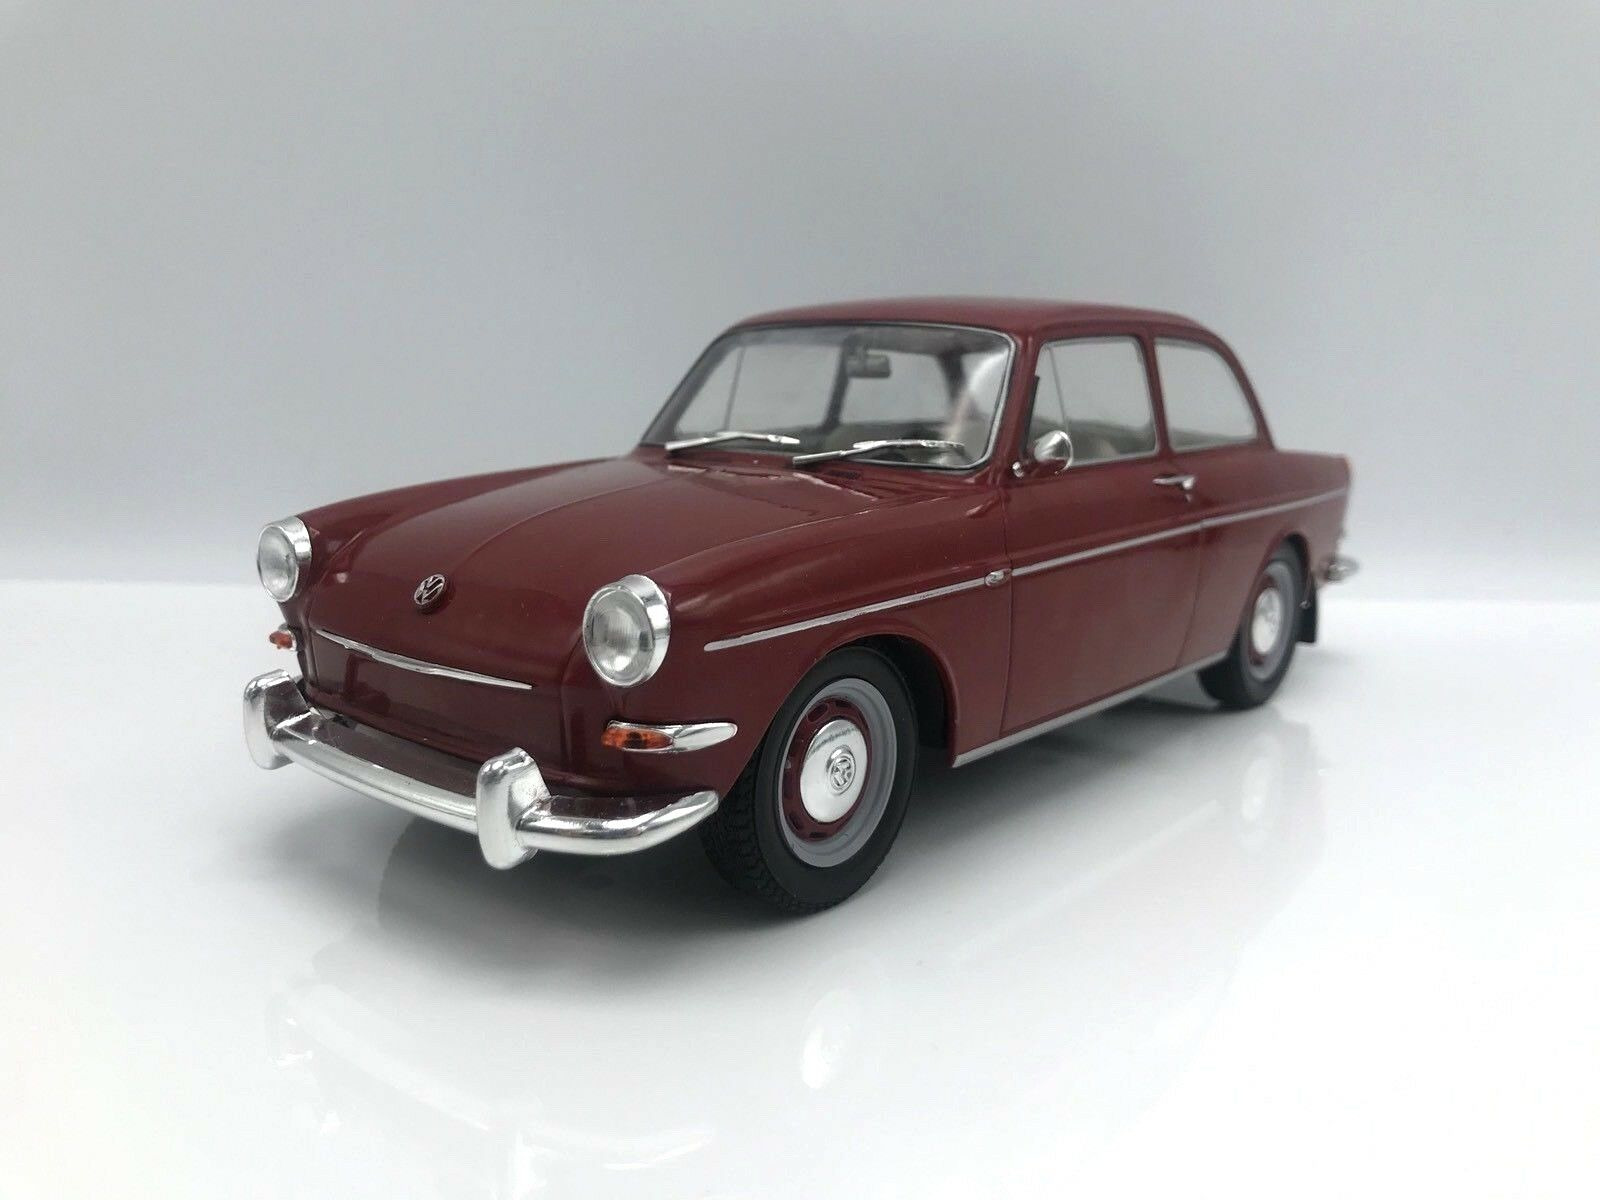 VW 1500 S (tipo 3) 1963-rosso oscuro - 1 18 microg    New